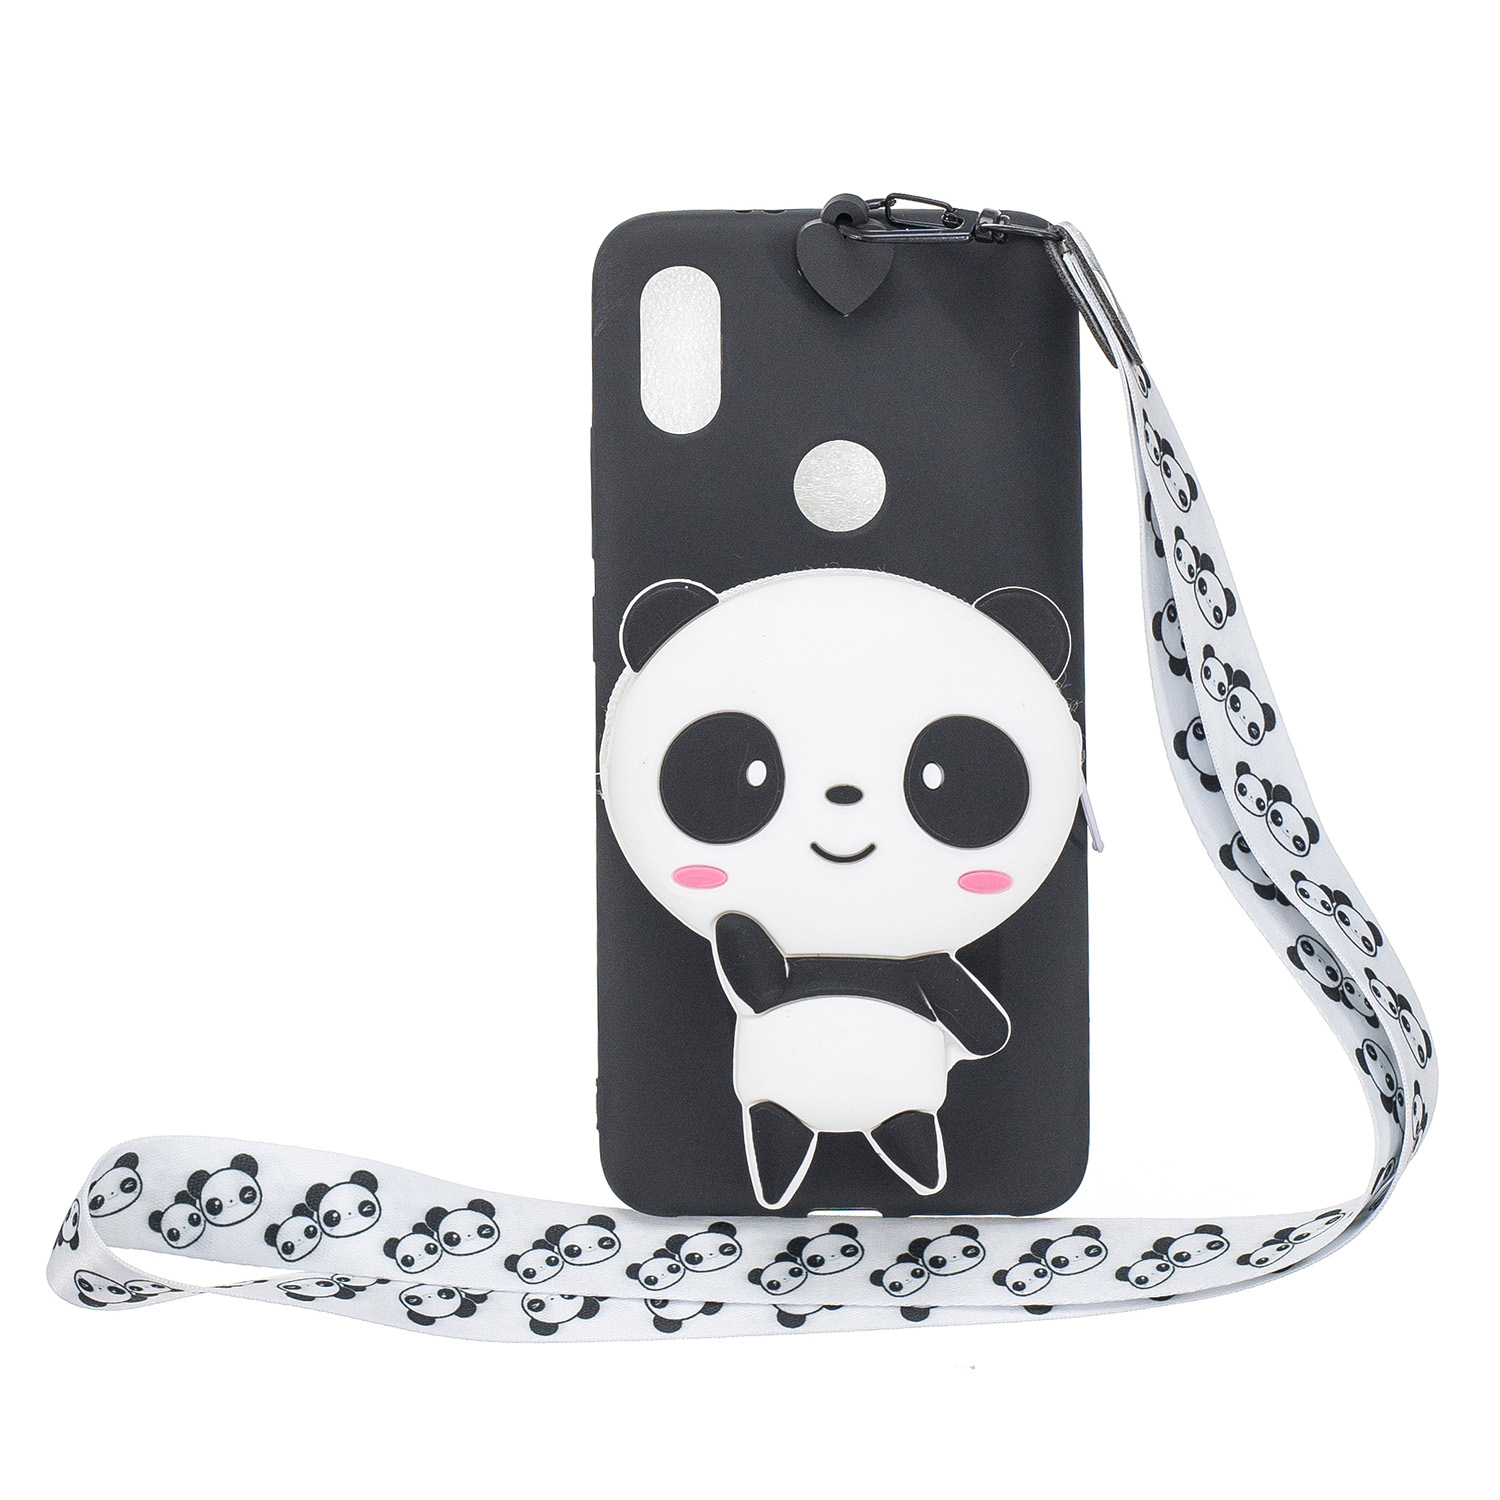 For HUAWEI Y6 2019 Y7 2019 Y9 2019 Cartoon Full Protective TPU Mobile Phone Cover with Mini Coin Purse+Cartoon Hanging Lanyard 4 black pandas